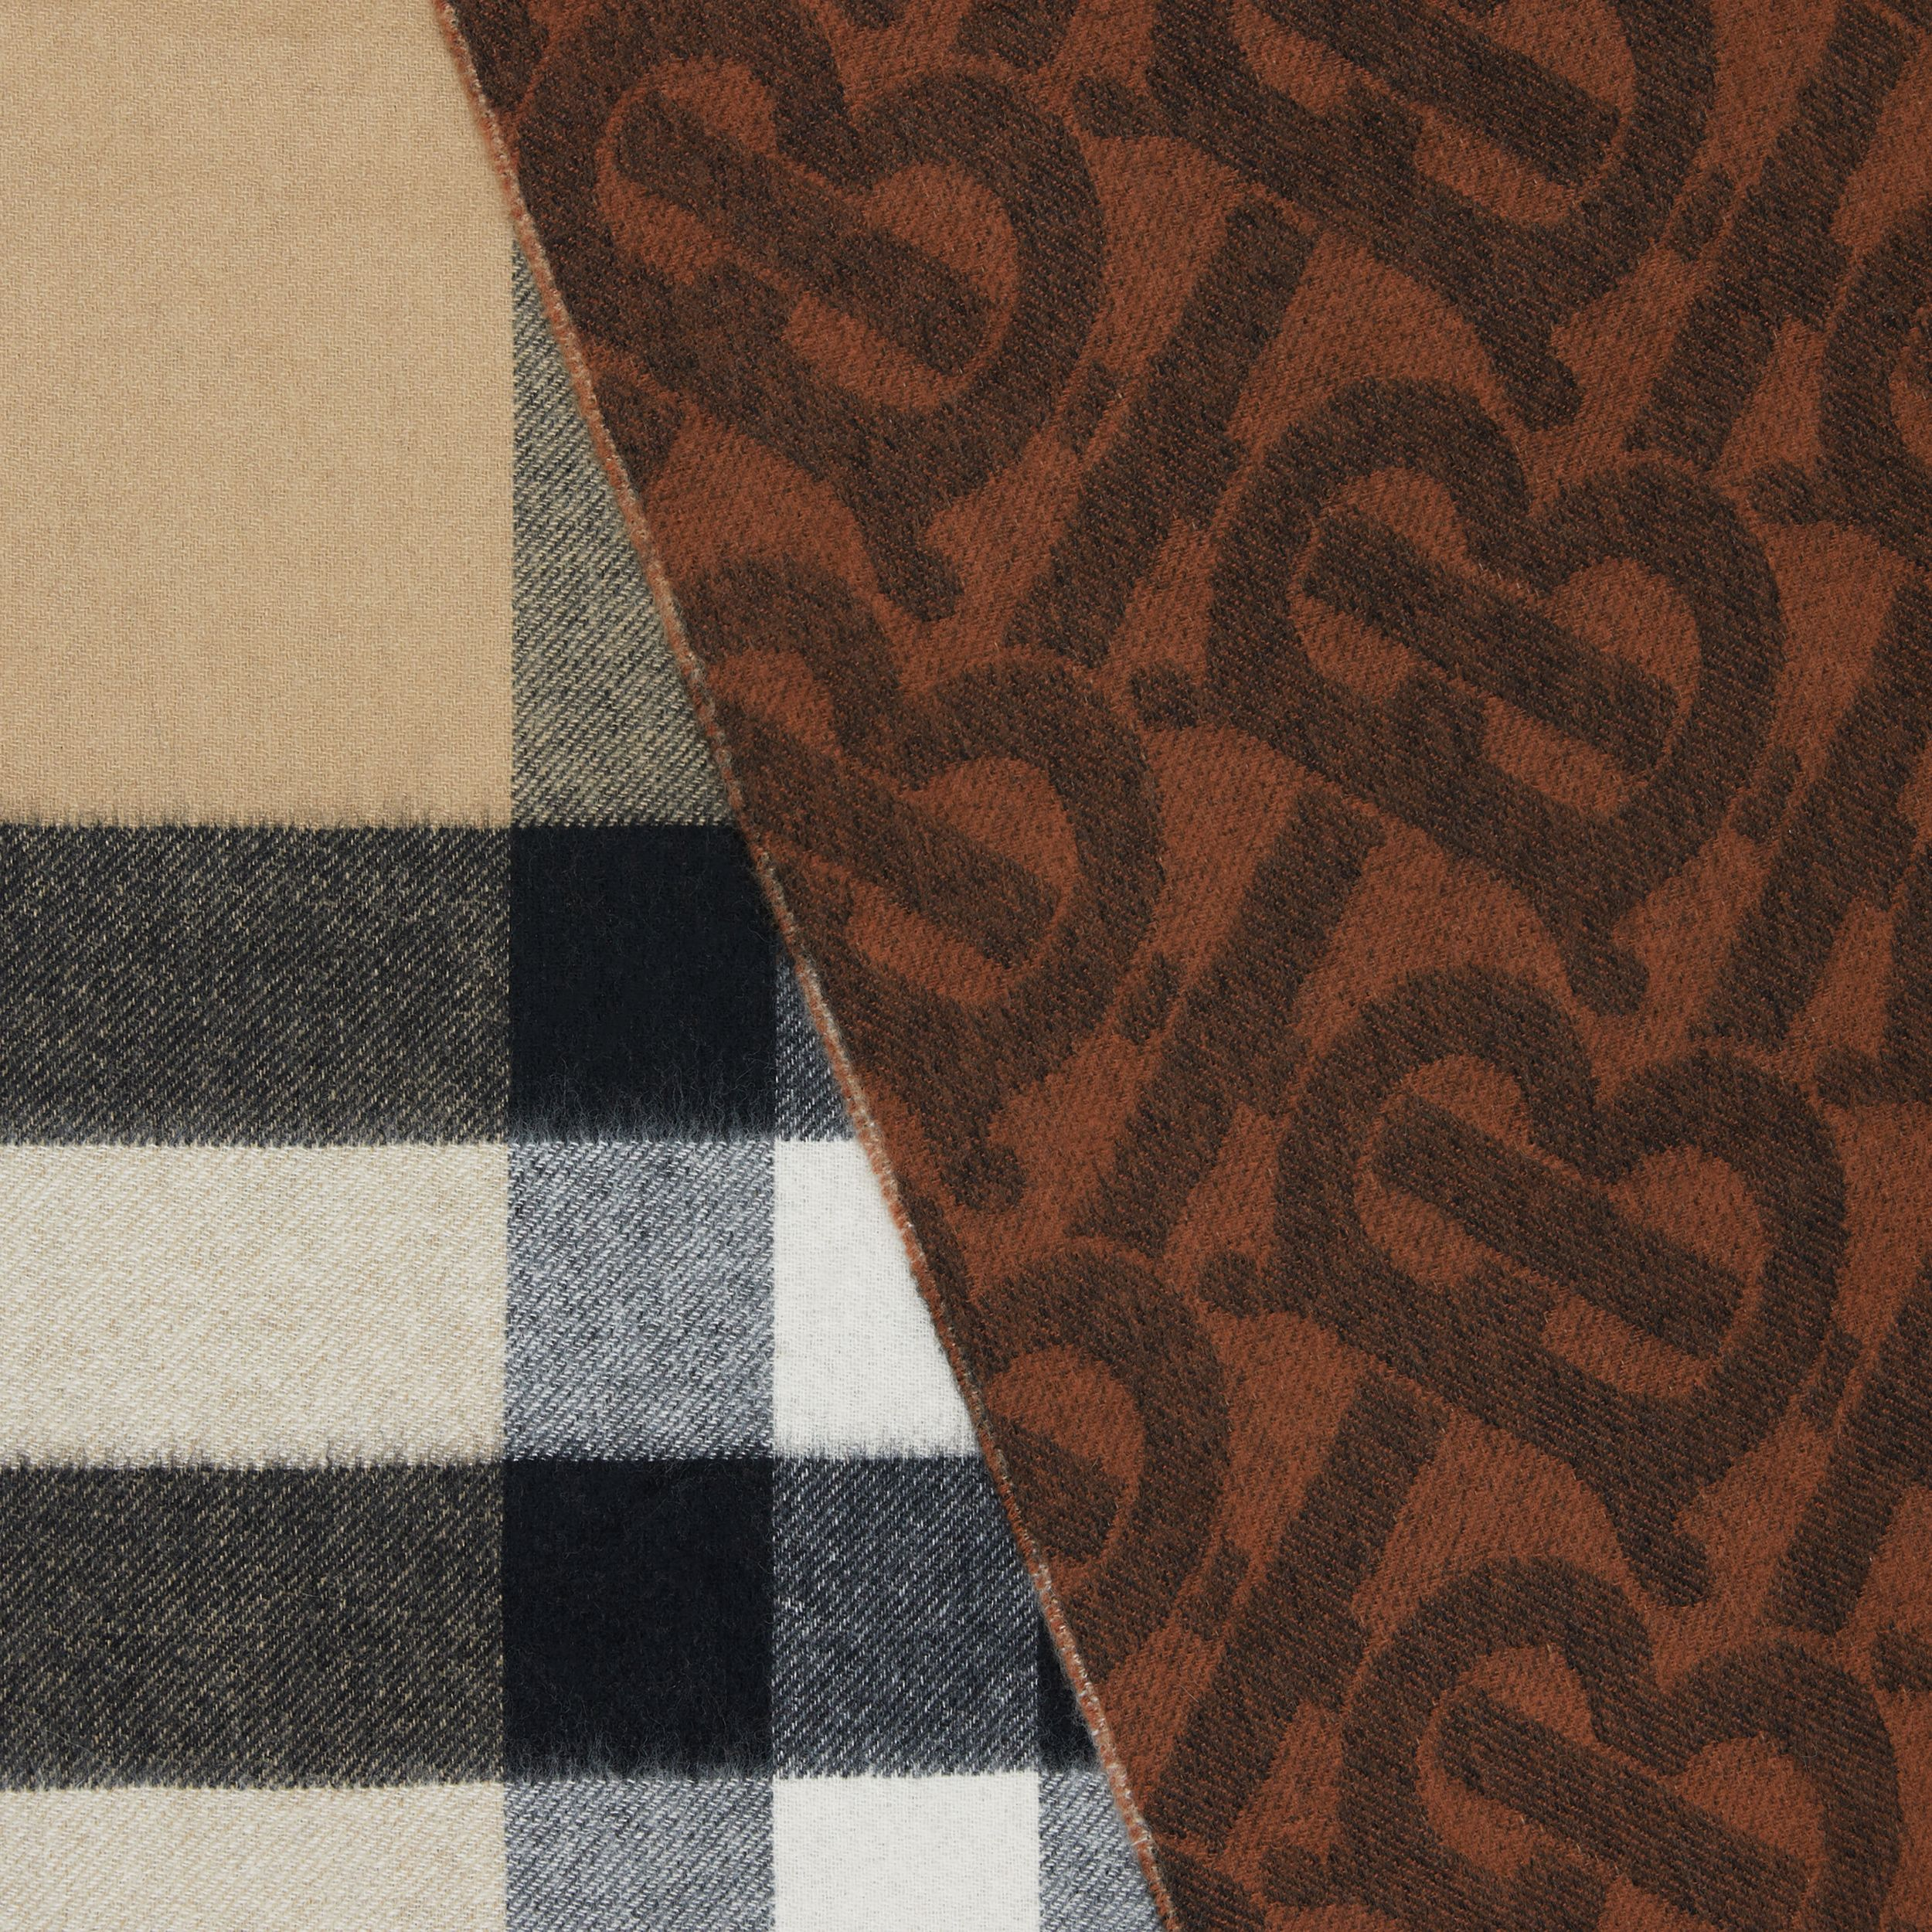 Reversible Check and Monogram Cashmere Scarf in Dark Chestnut Brown | Burberry - 2